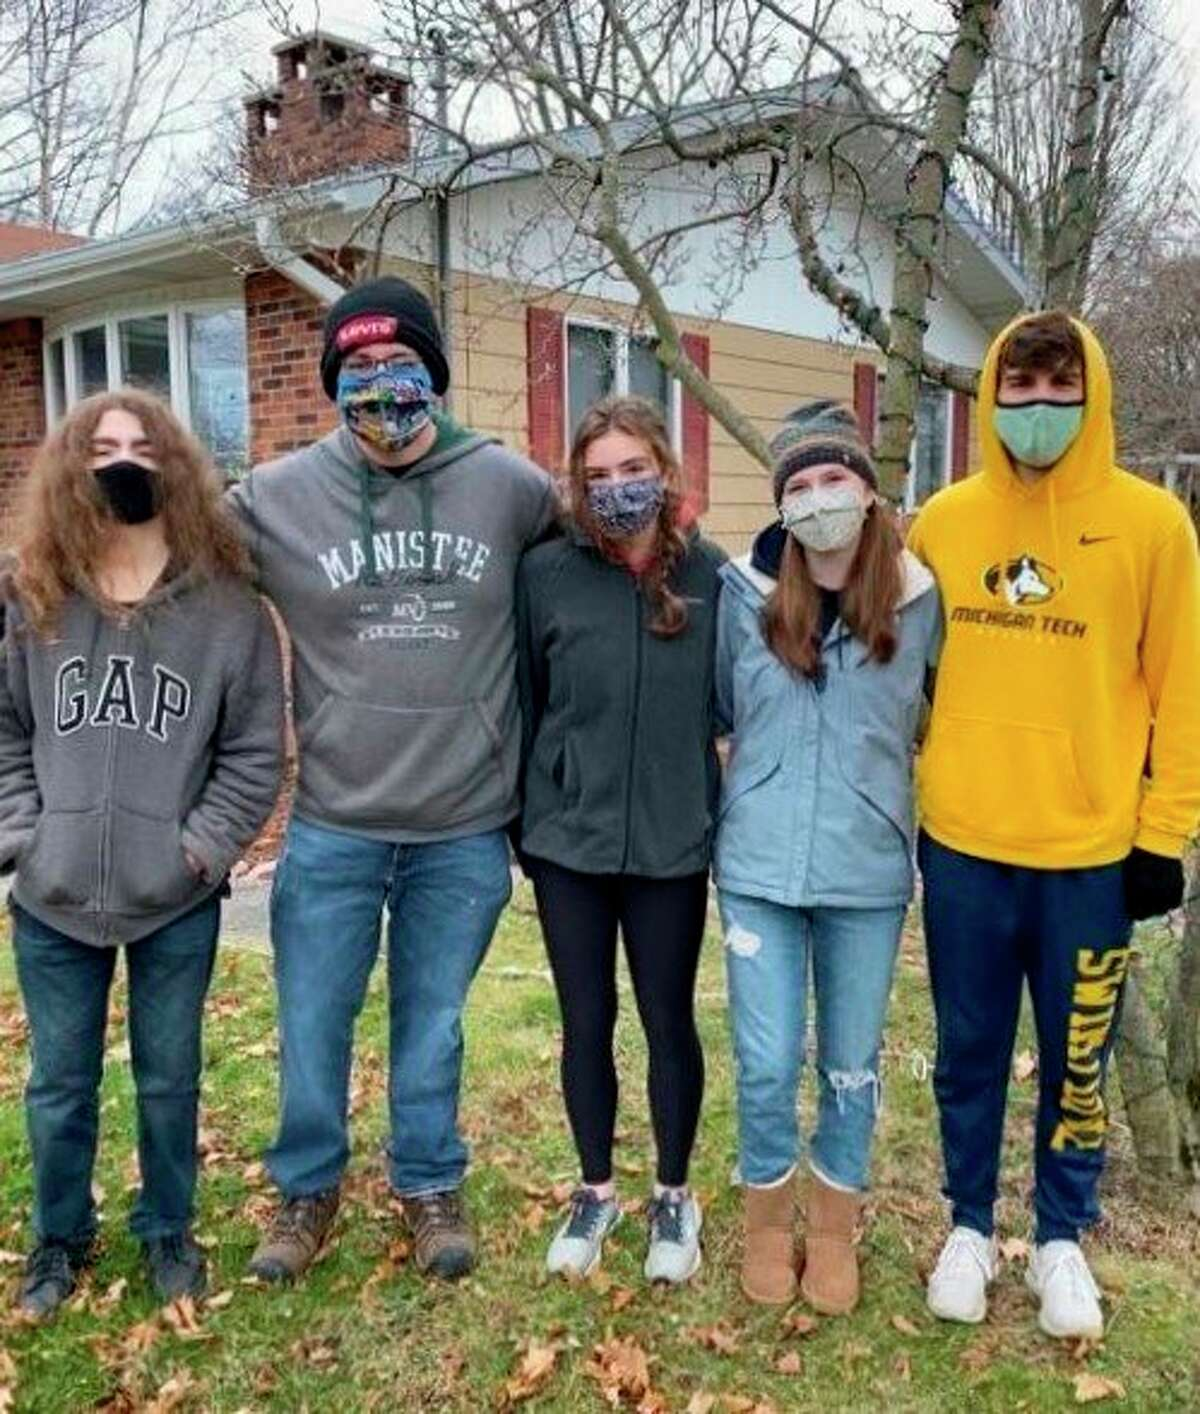 A group of students from the Manistee High School chapter of the National Honor Society take a break from putting up Christmas decorations for a Manistee resident to pose for a photo. (Courtesy photo)